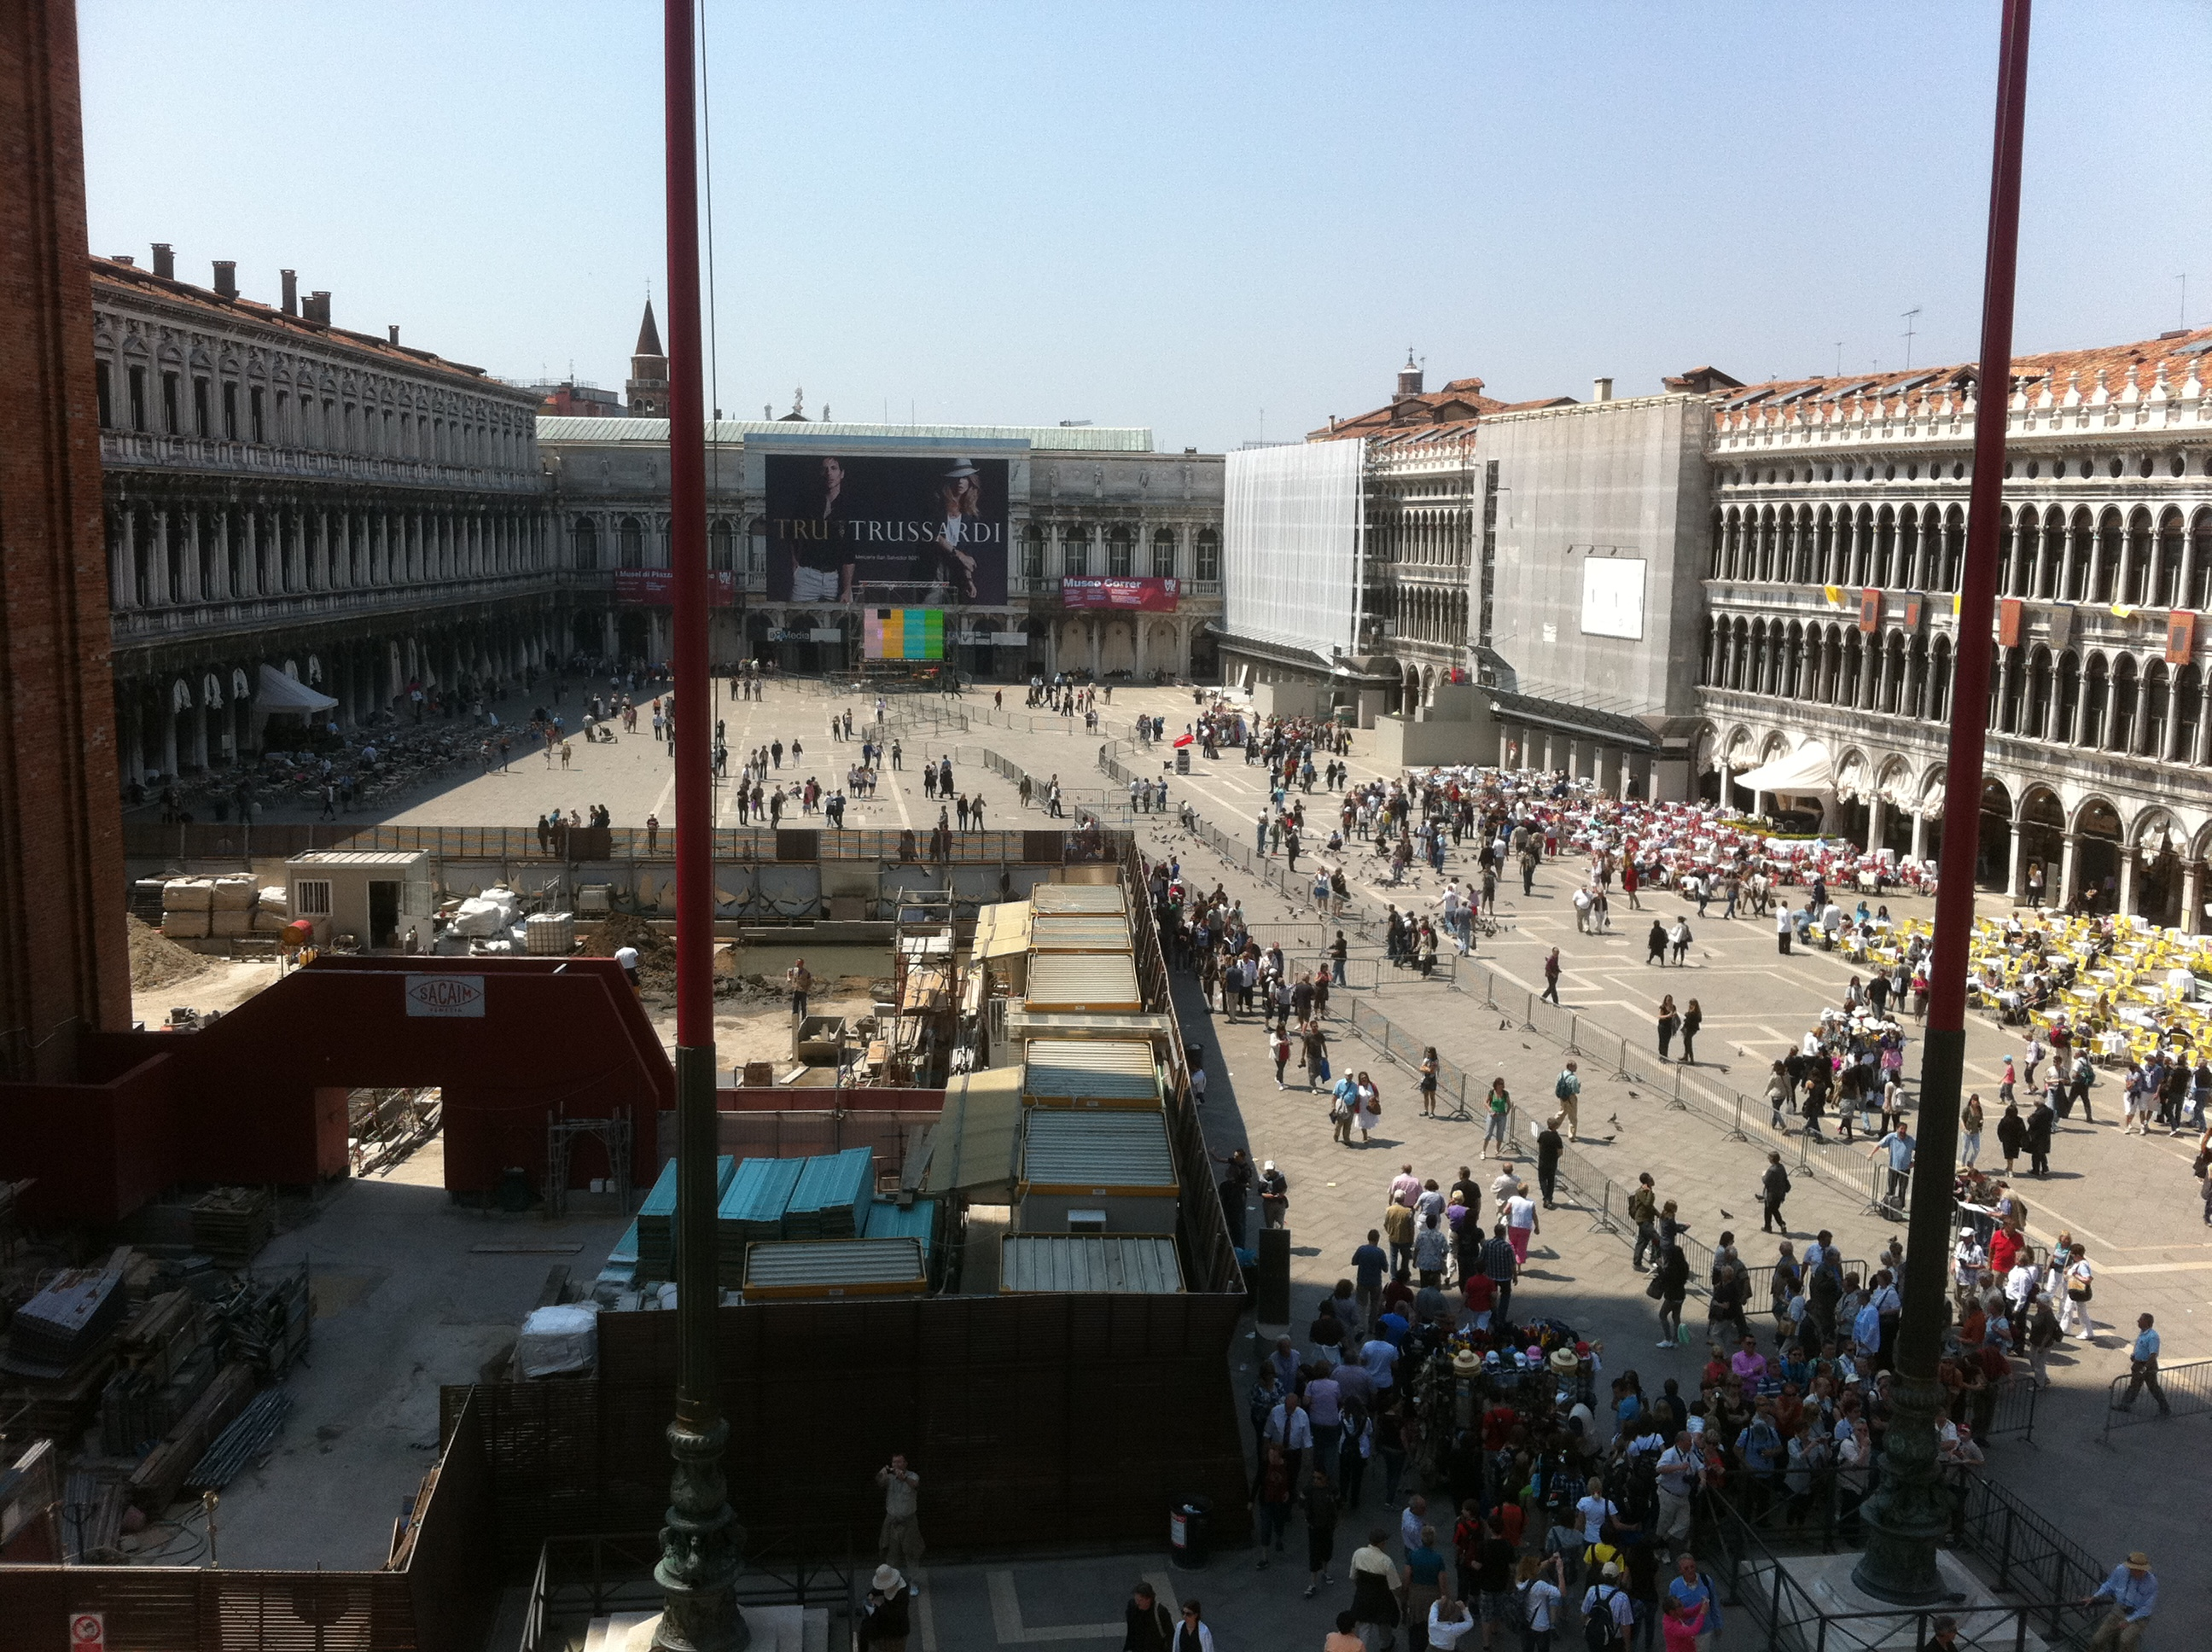 Piazzo San Marco from the Basilica; preparations already underway for a papal visit